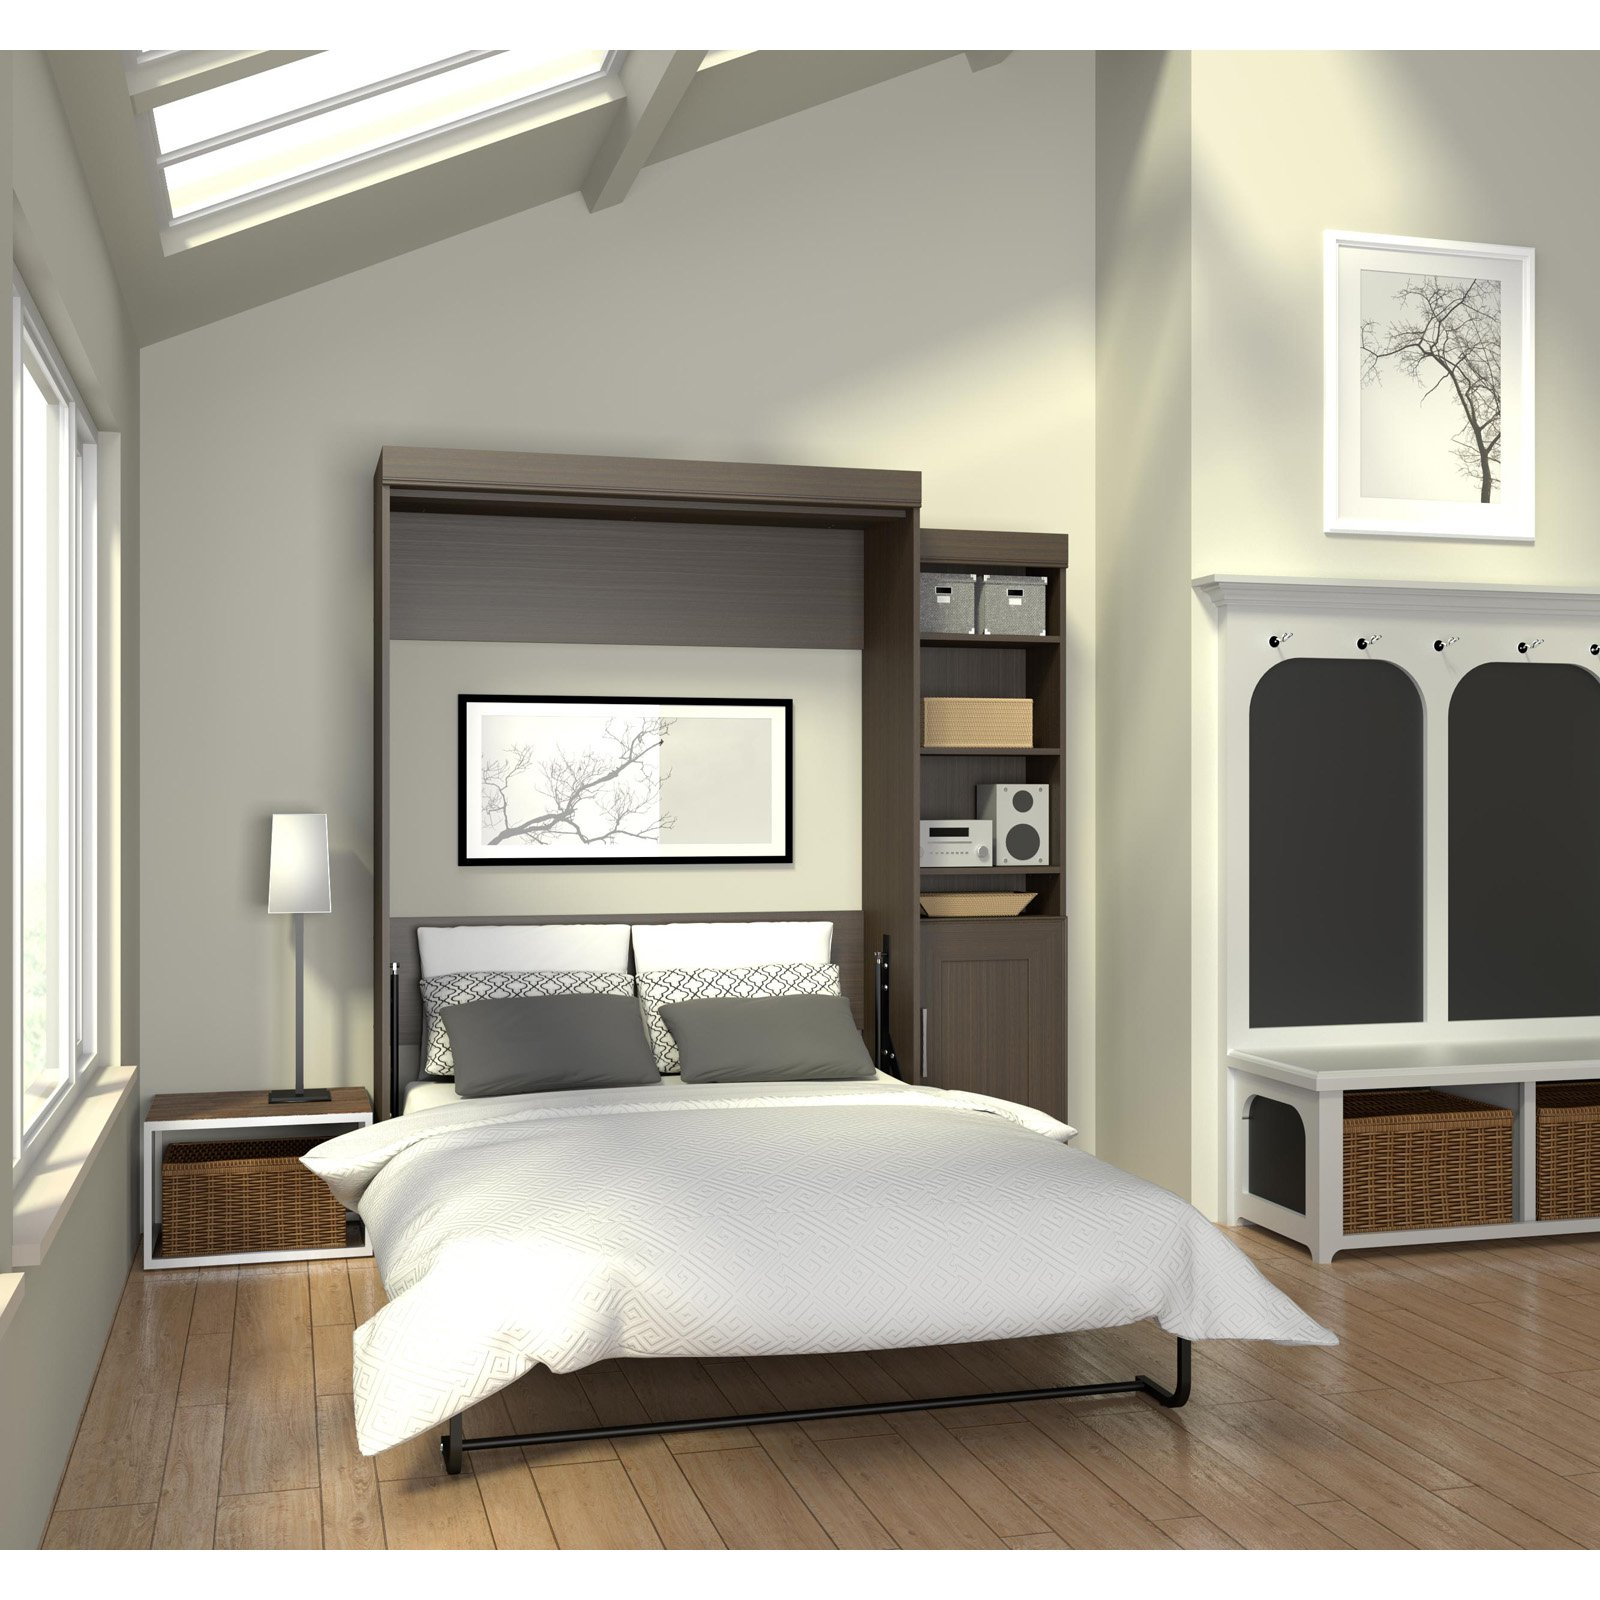 Install Murphy Bed | Wall Bed Kits | Bestar Wall Bed